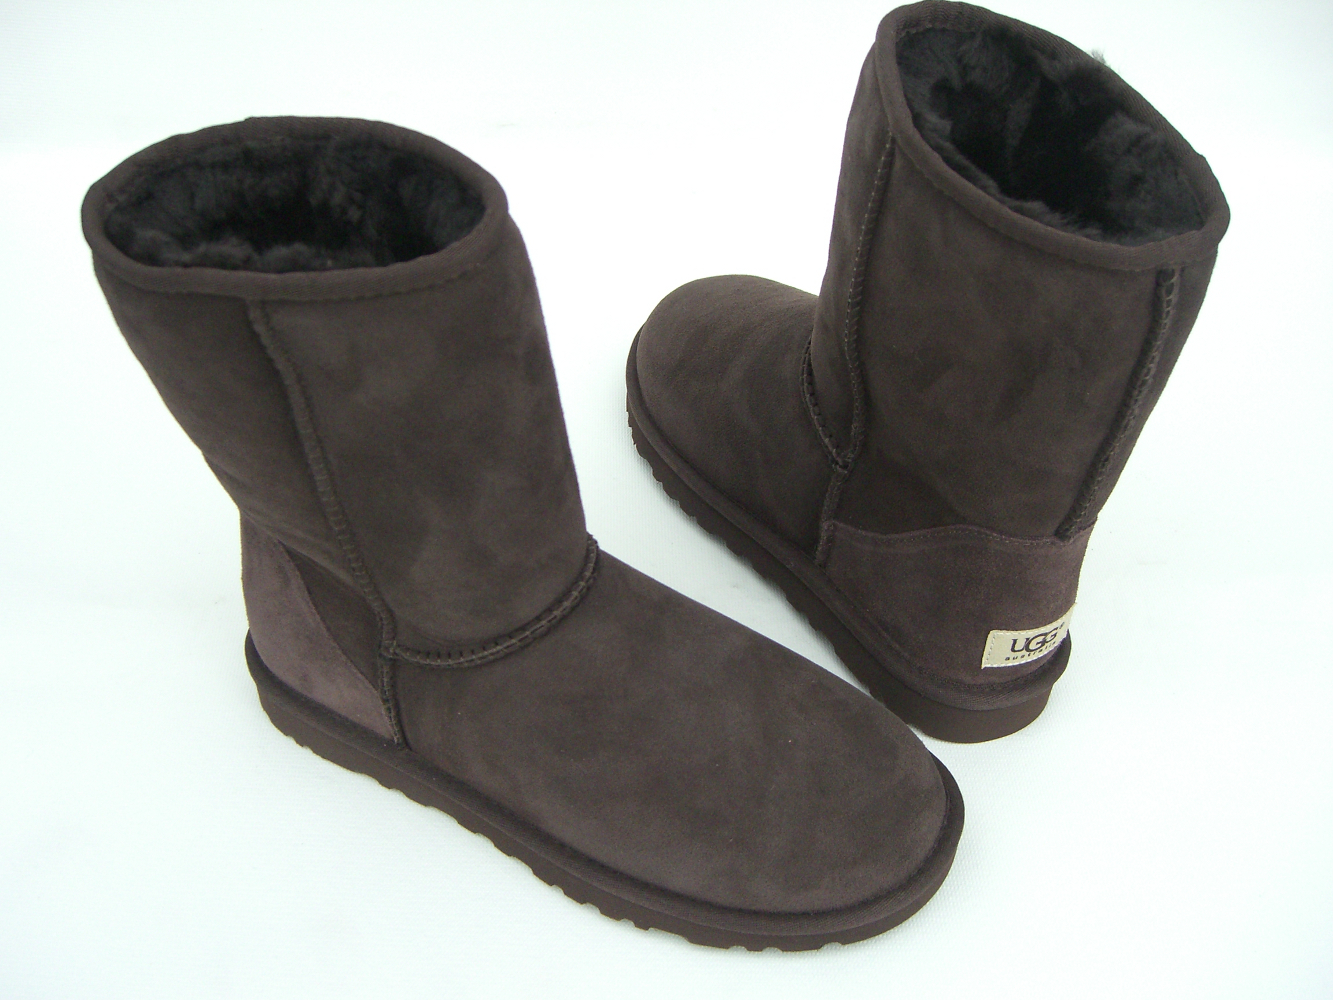 original ugg boots made in australia